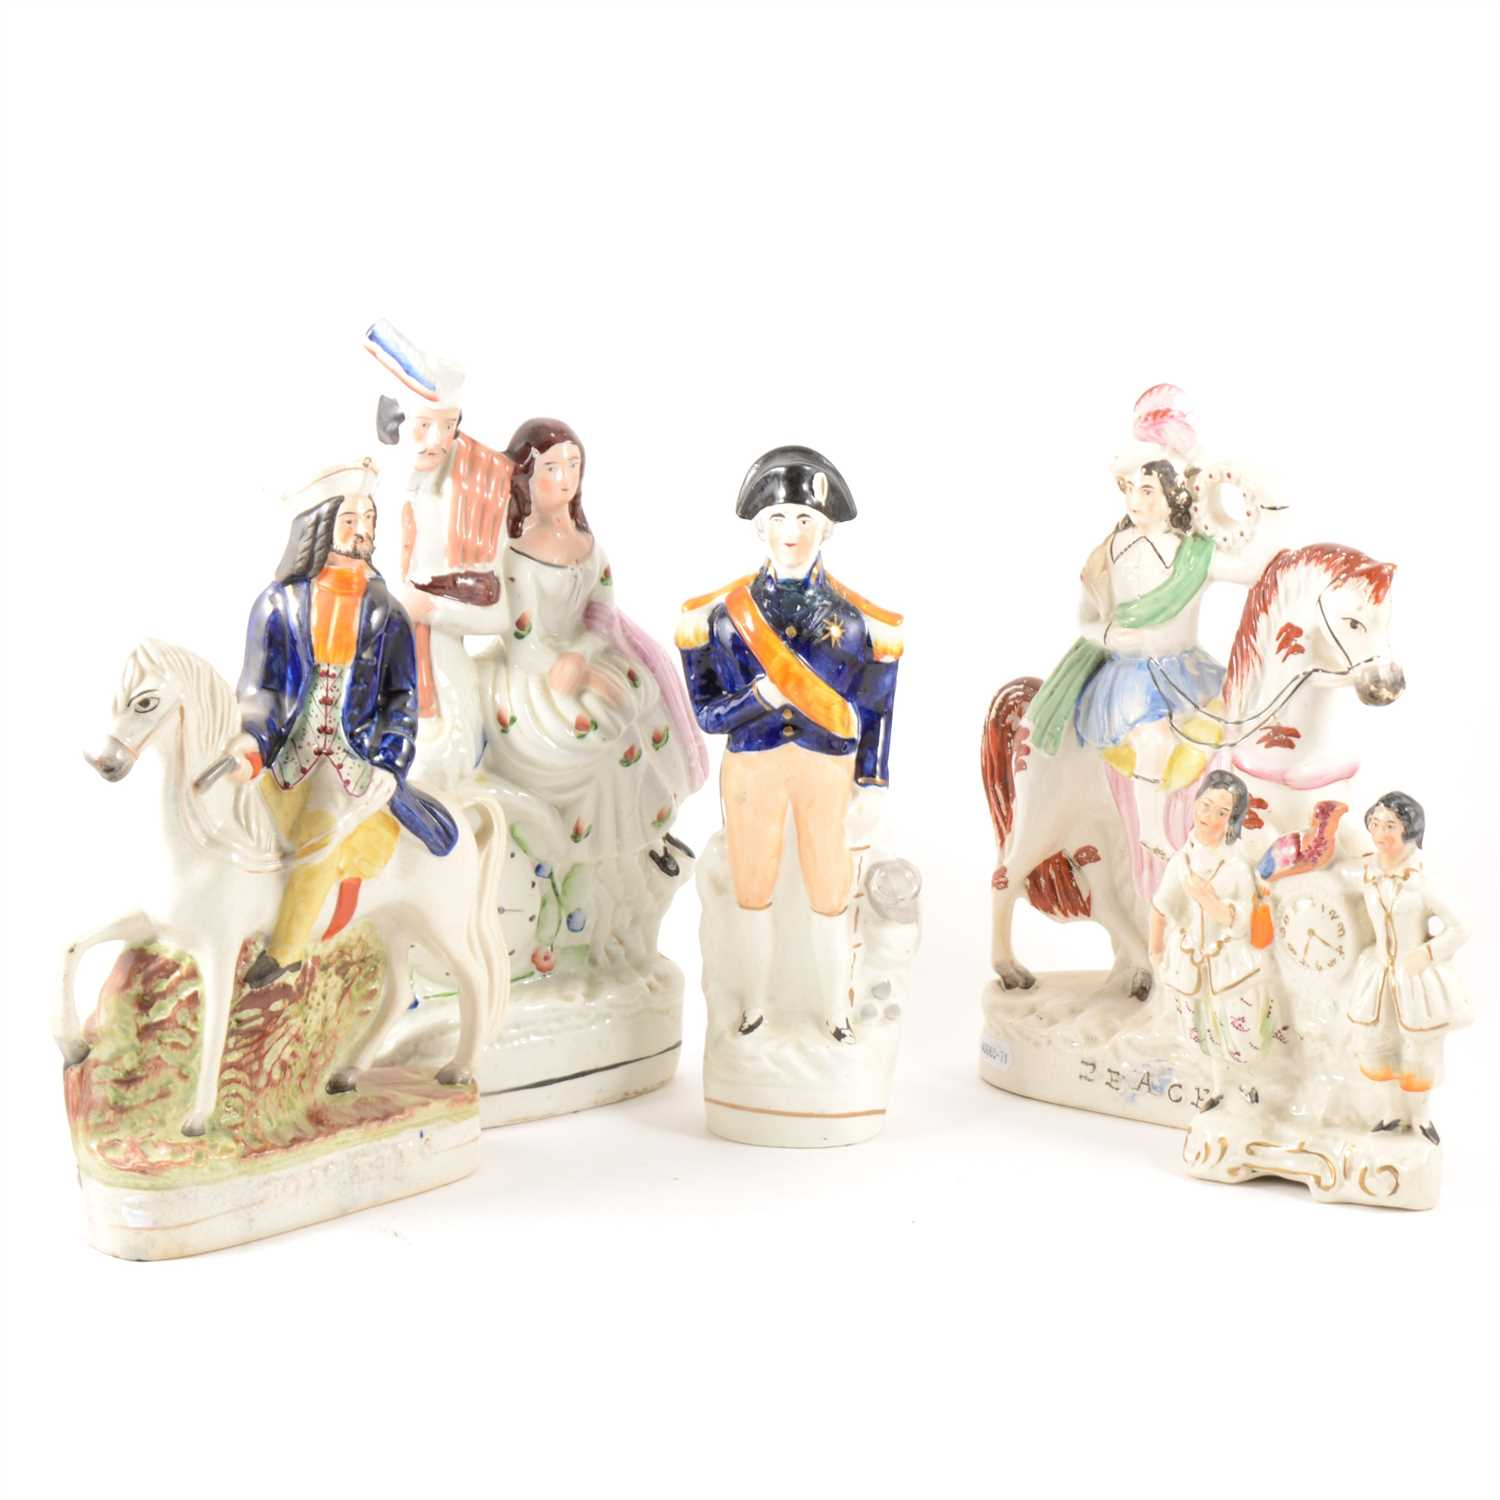 Lot 54-A Staffordshire equestrian figure, Prince of Wales, and a collection of other figures and groups.